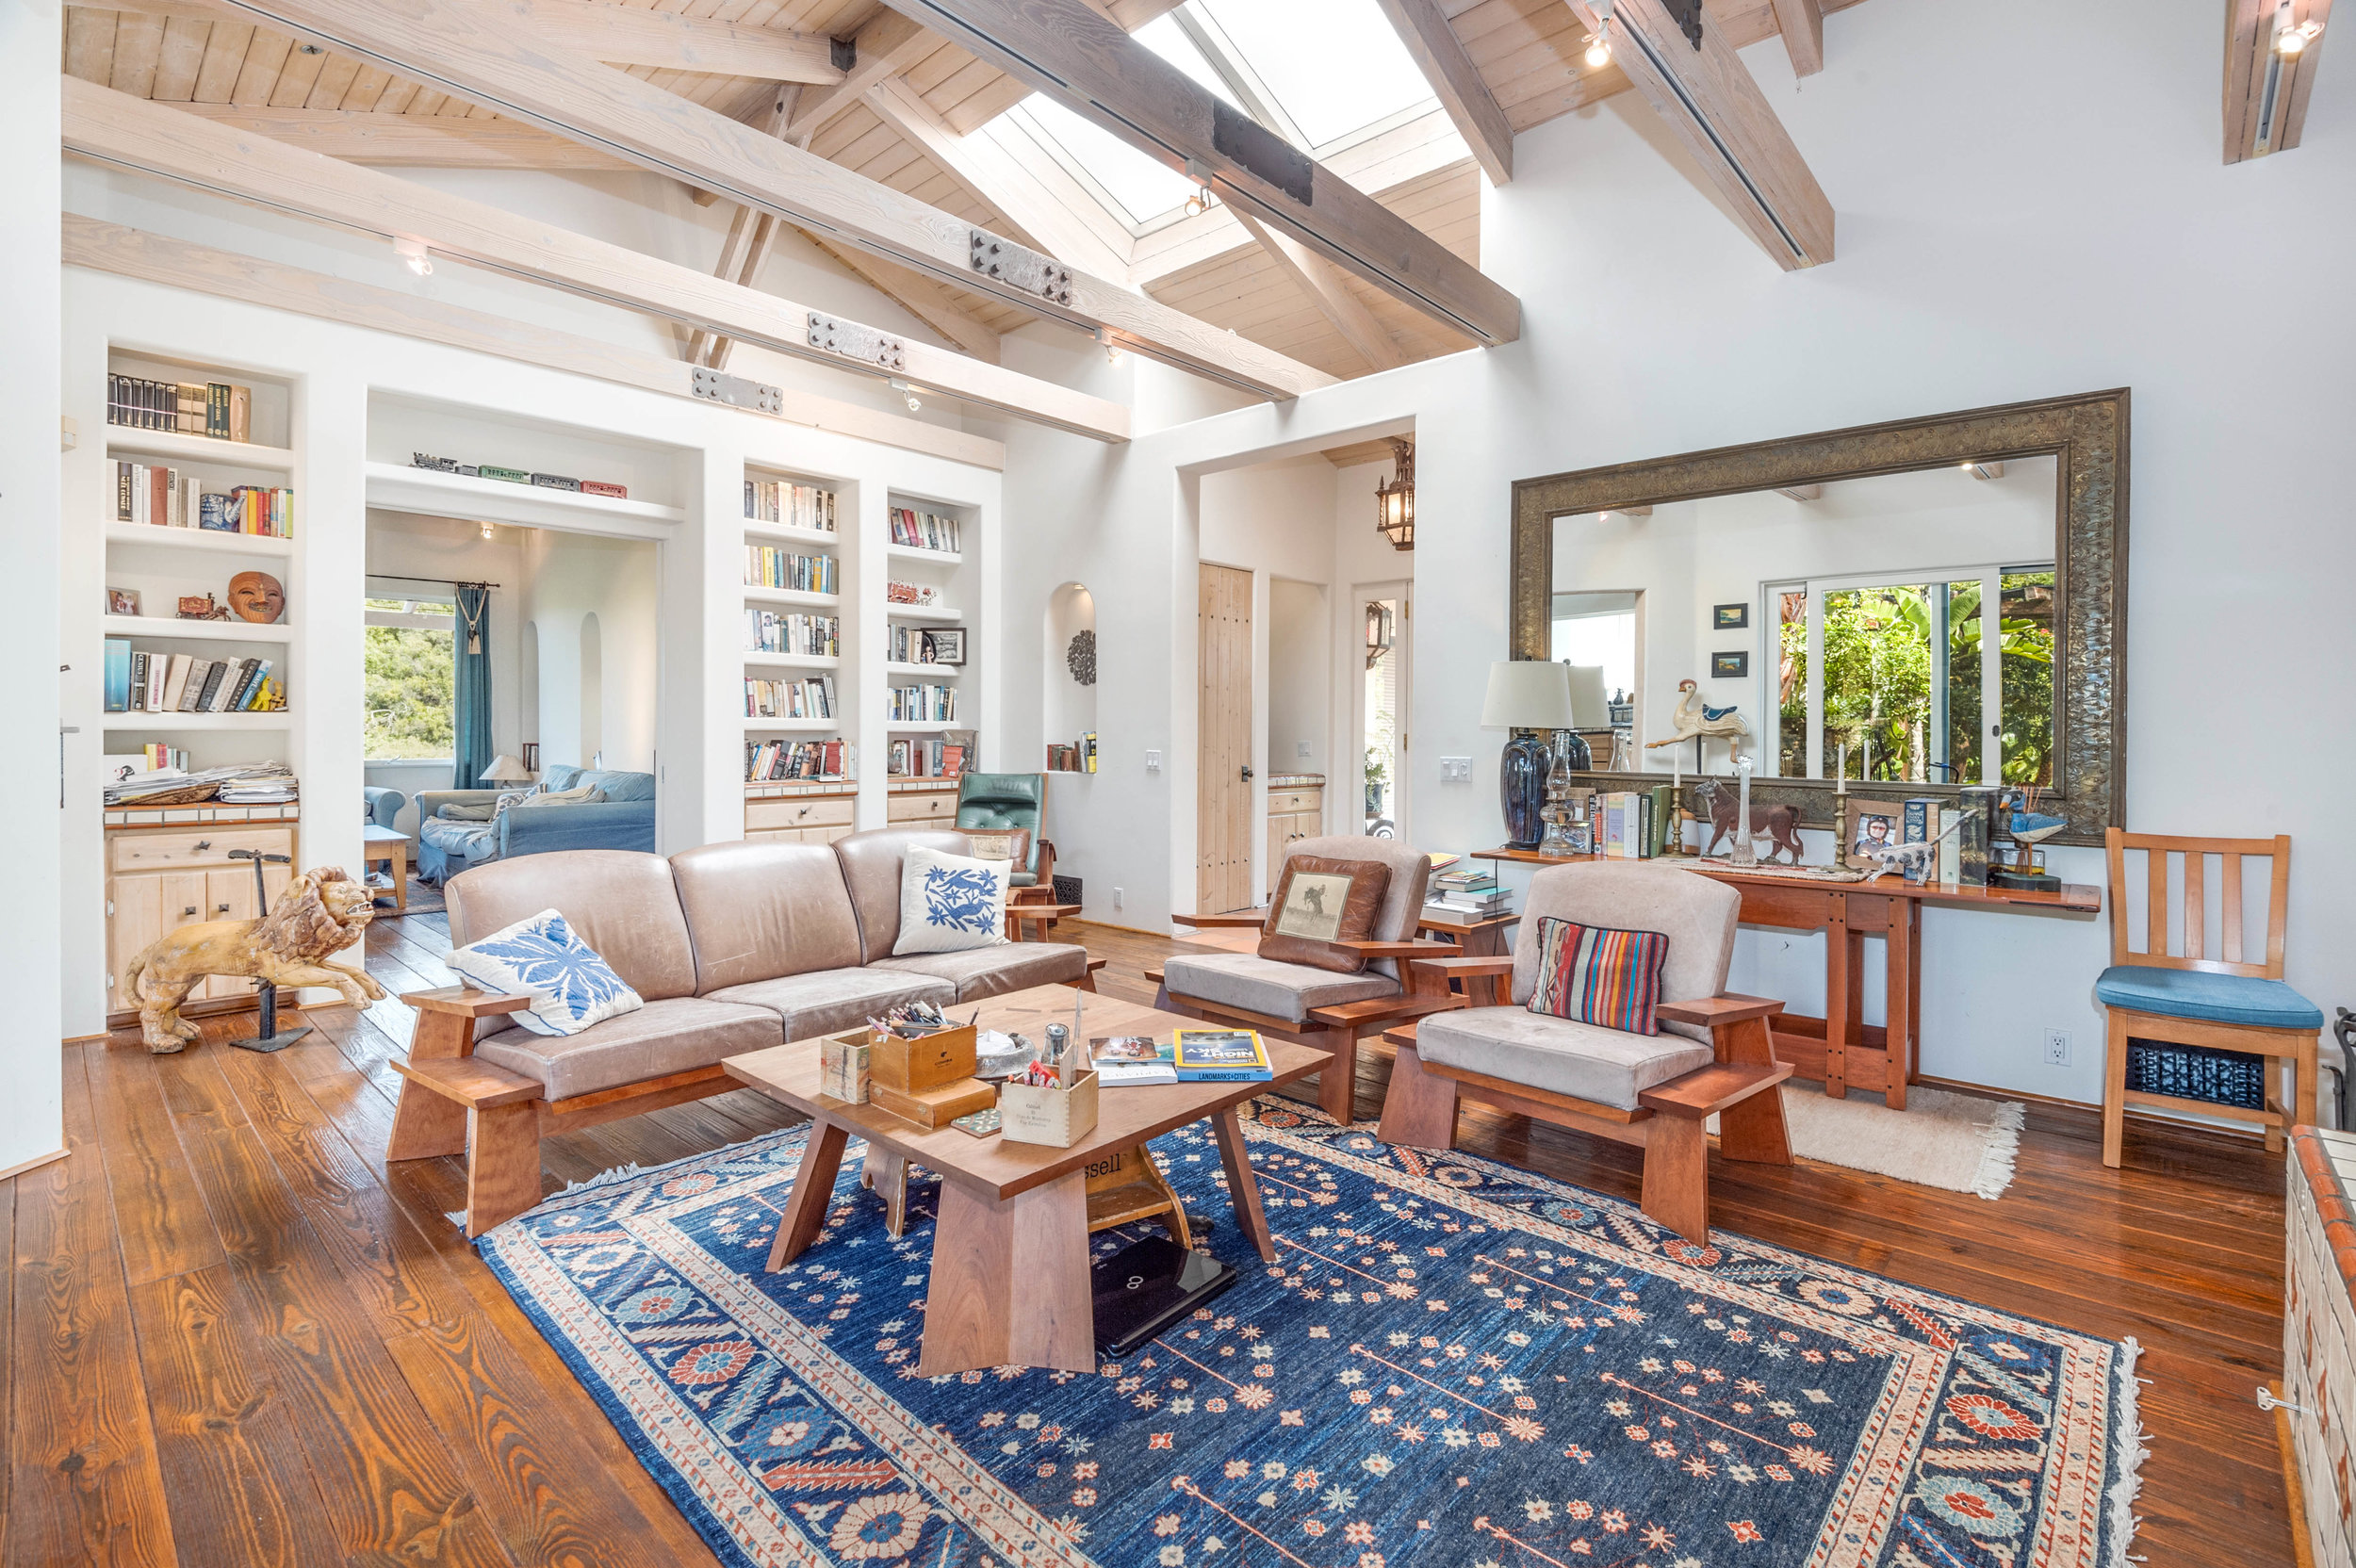 001 Living Room 20333 Reigate Road Topanga For Sale Lease The Malibu Life Team Luxury Real Estate.jpg